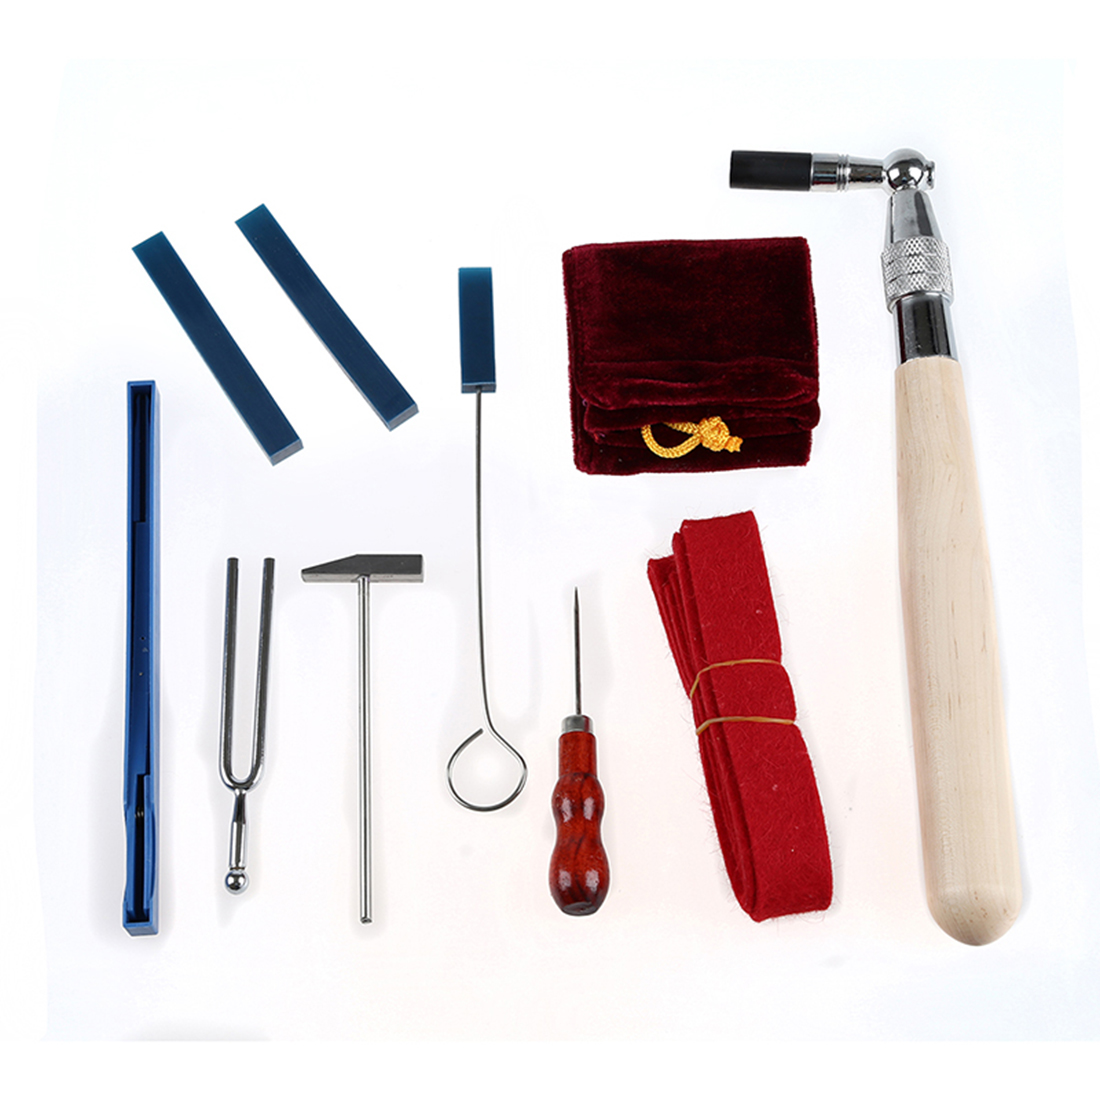 11Pcs Professional Piano Tuning Tool Kit Maintenance Equip with Case